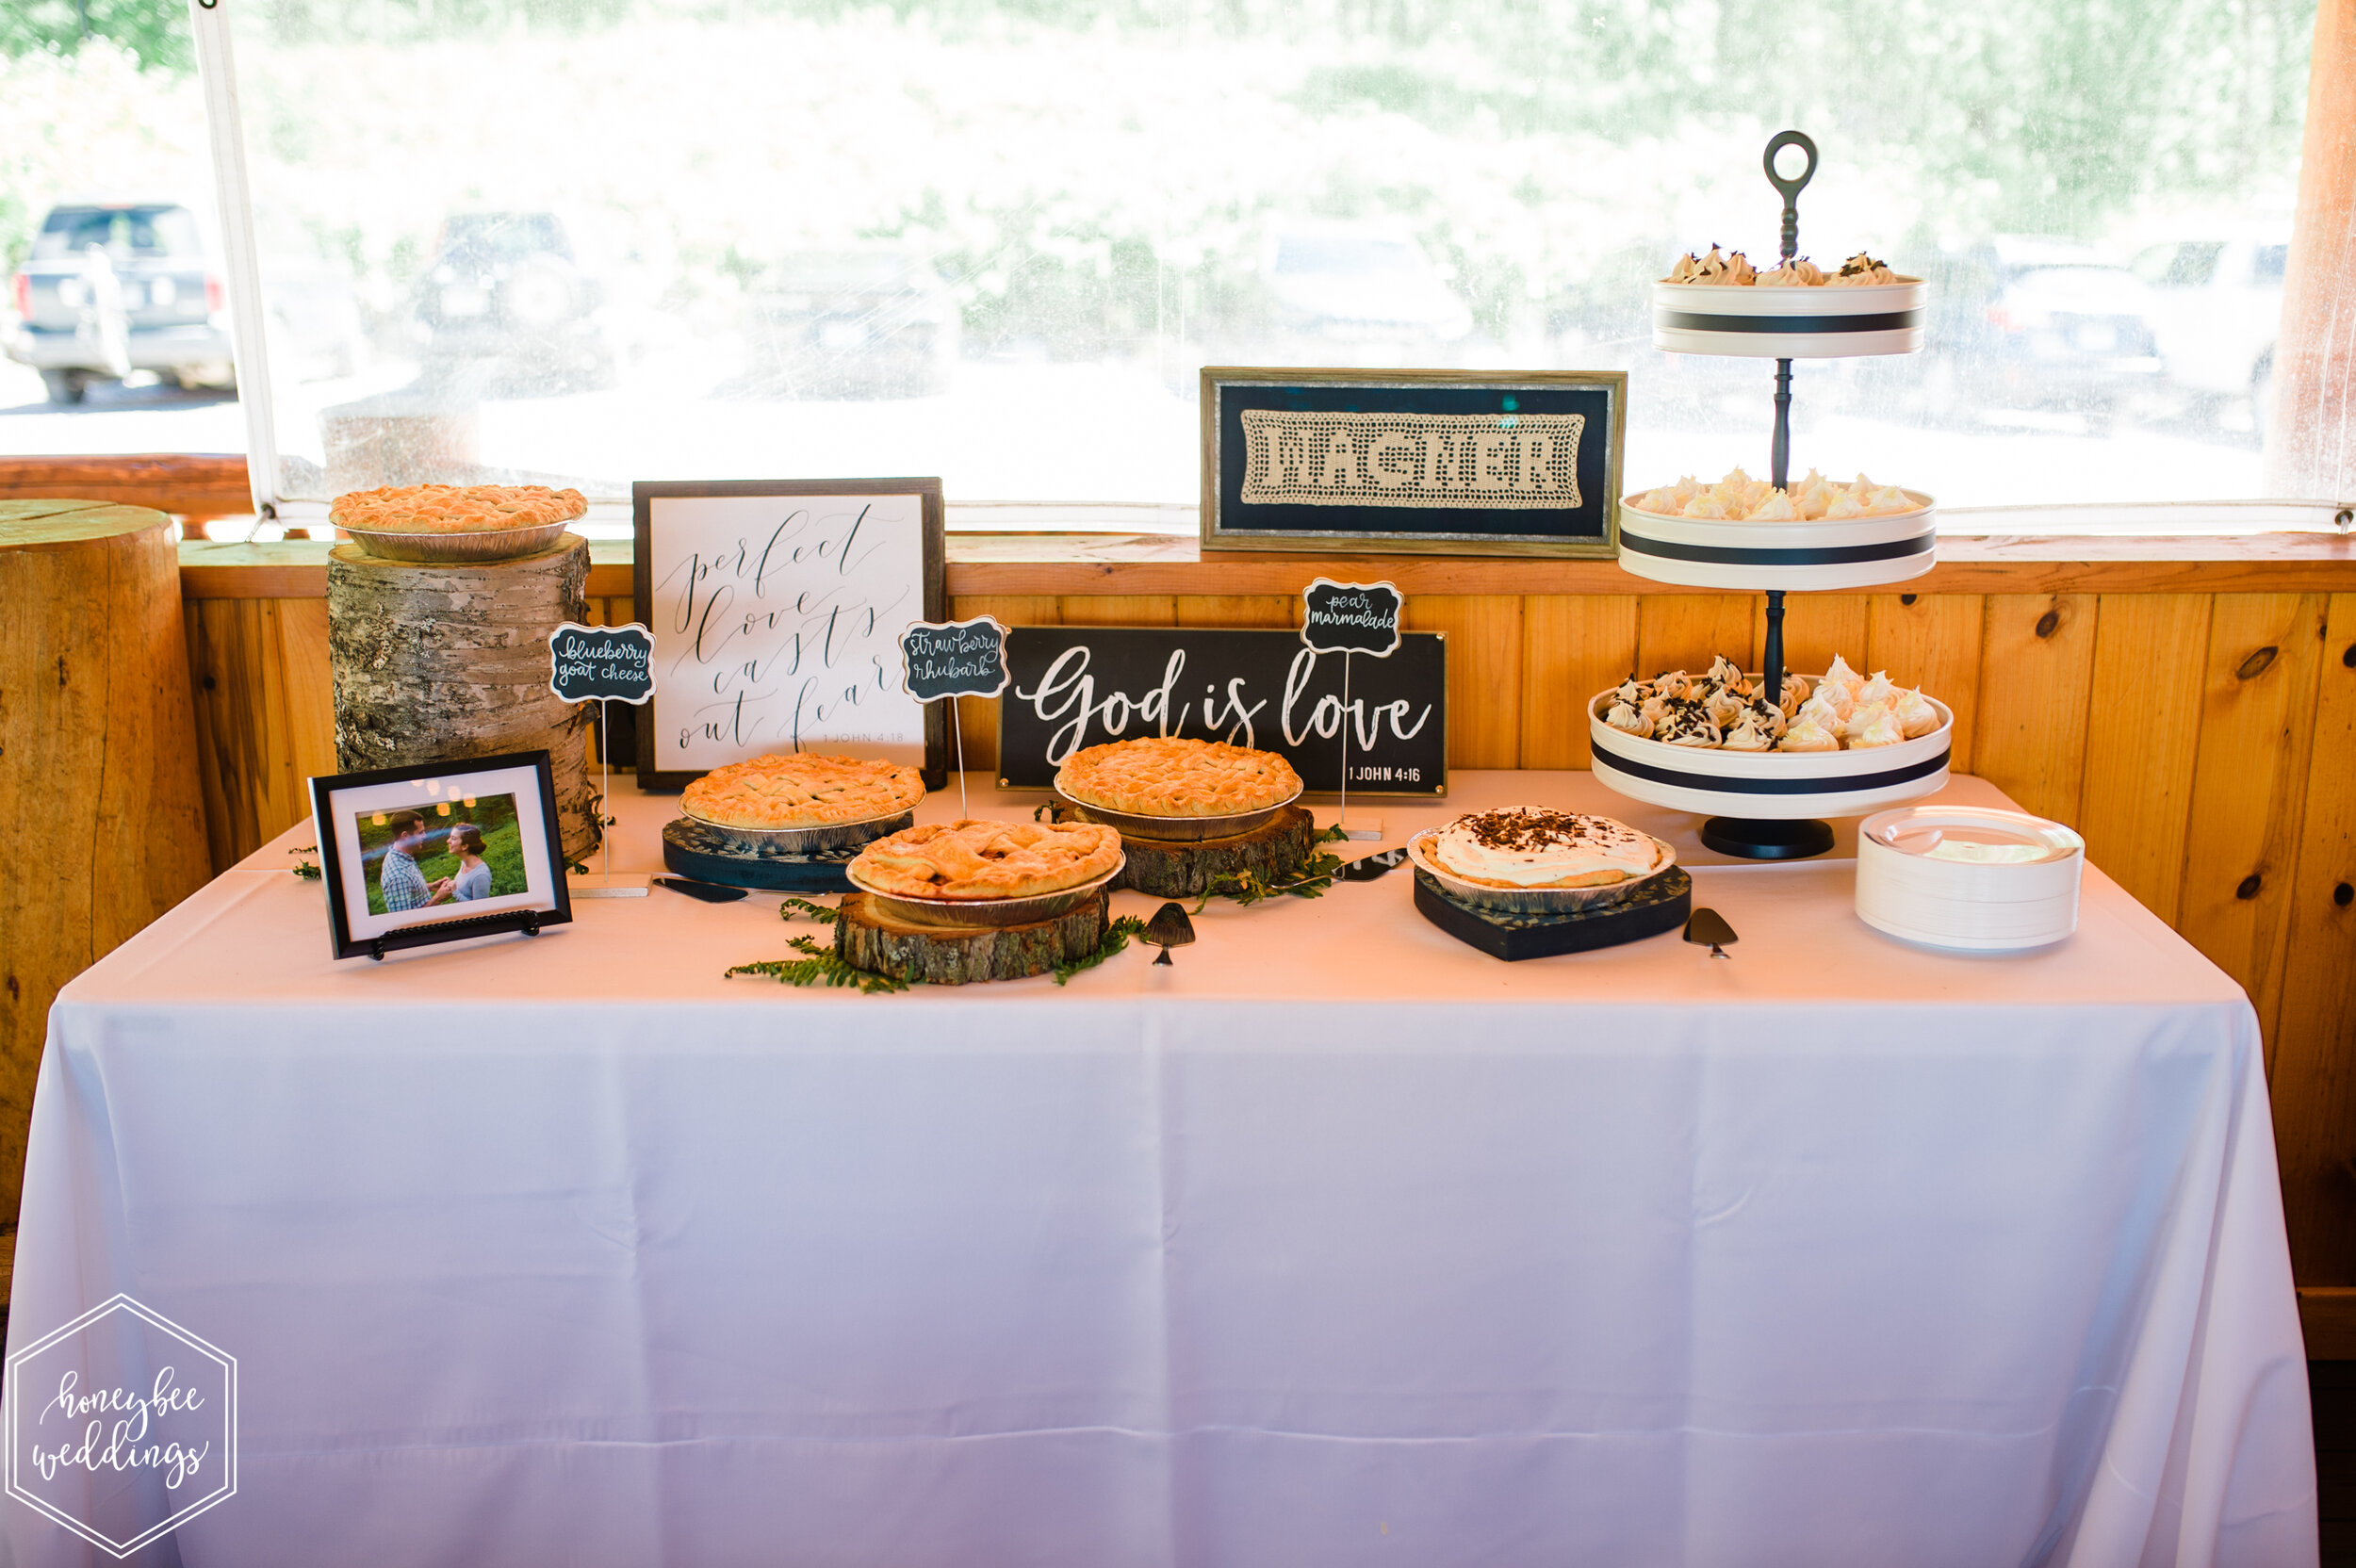 080Glacier National Park Wedding_Glacier Outdoor Center_Honeybee Weddings_Anna & Seth_July 21, 2019-2125.jpg